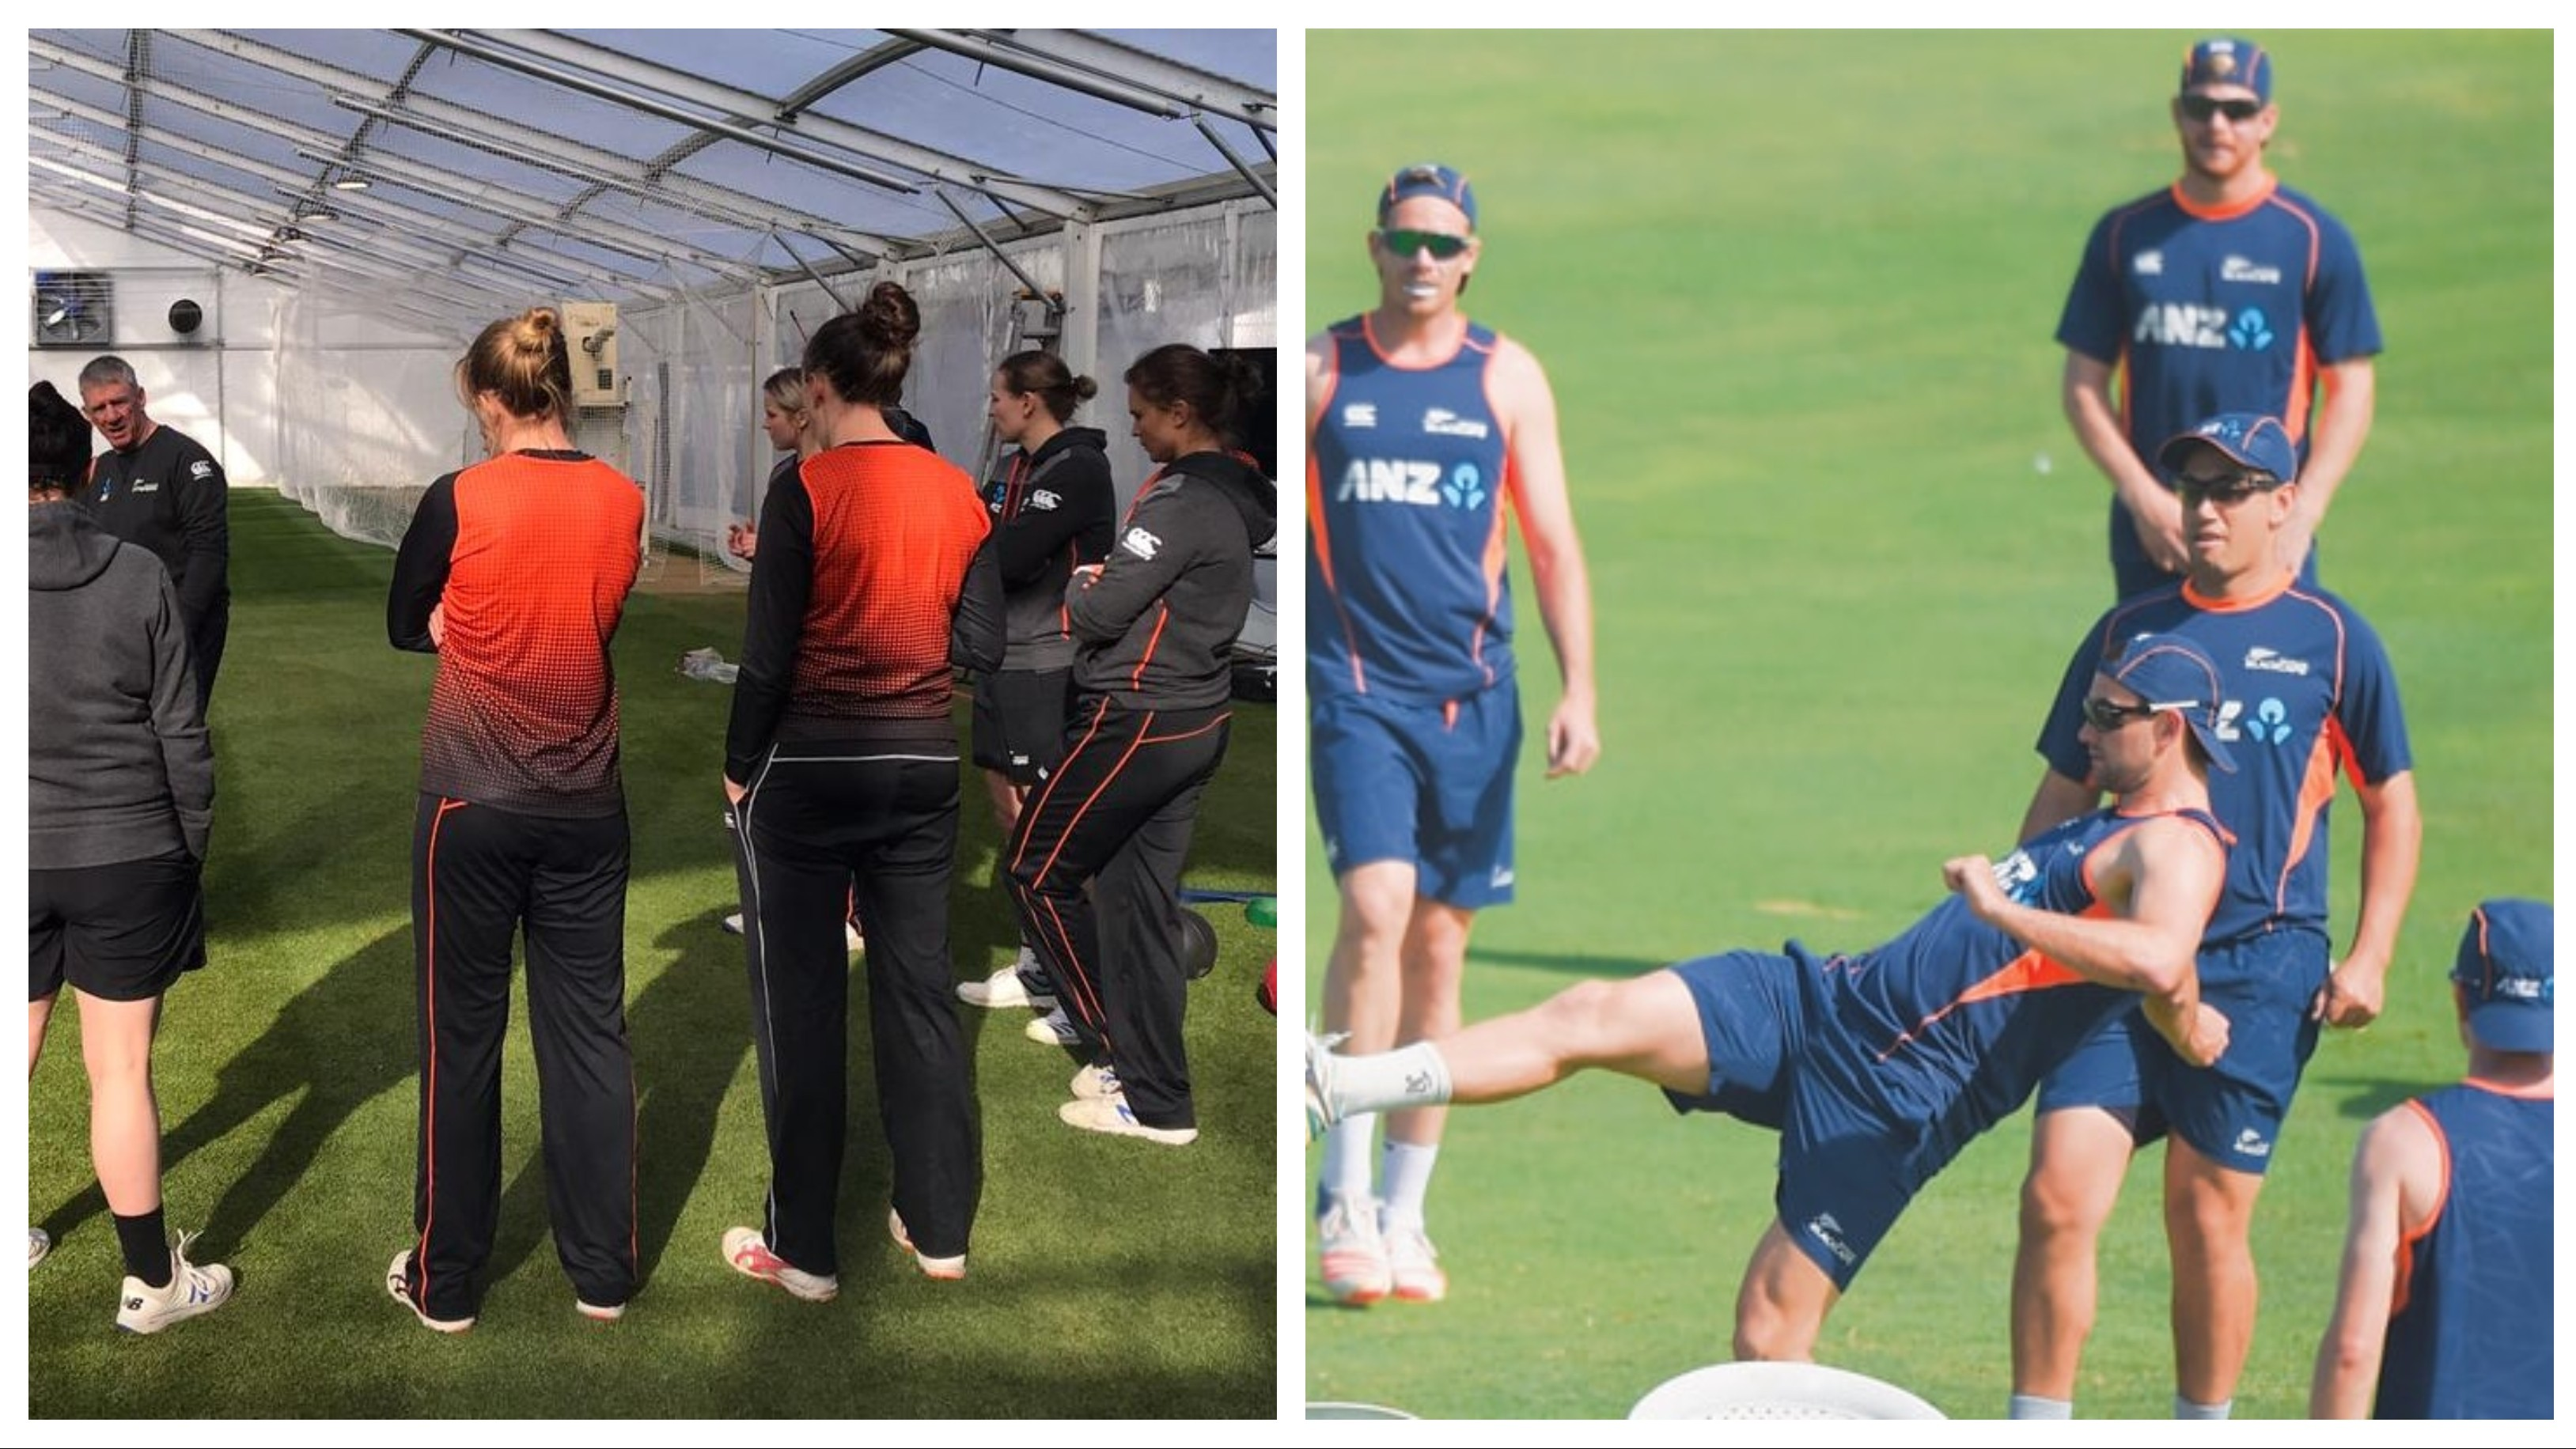 New Zealand cricketers return to training after COVID-19 lockdown